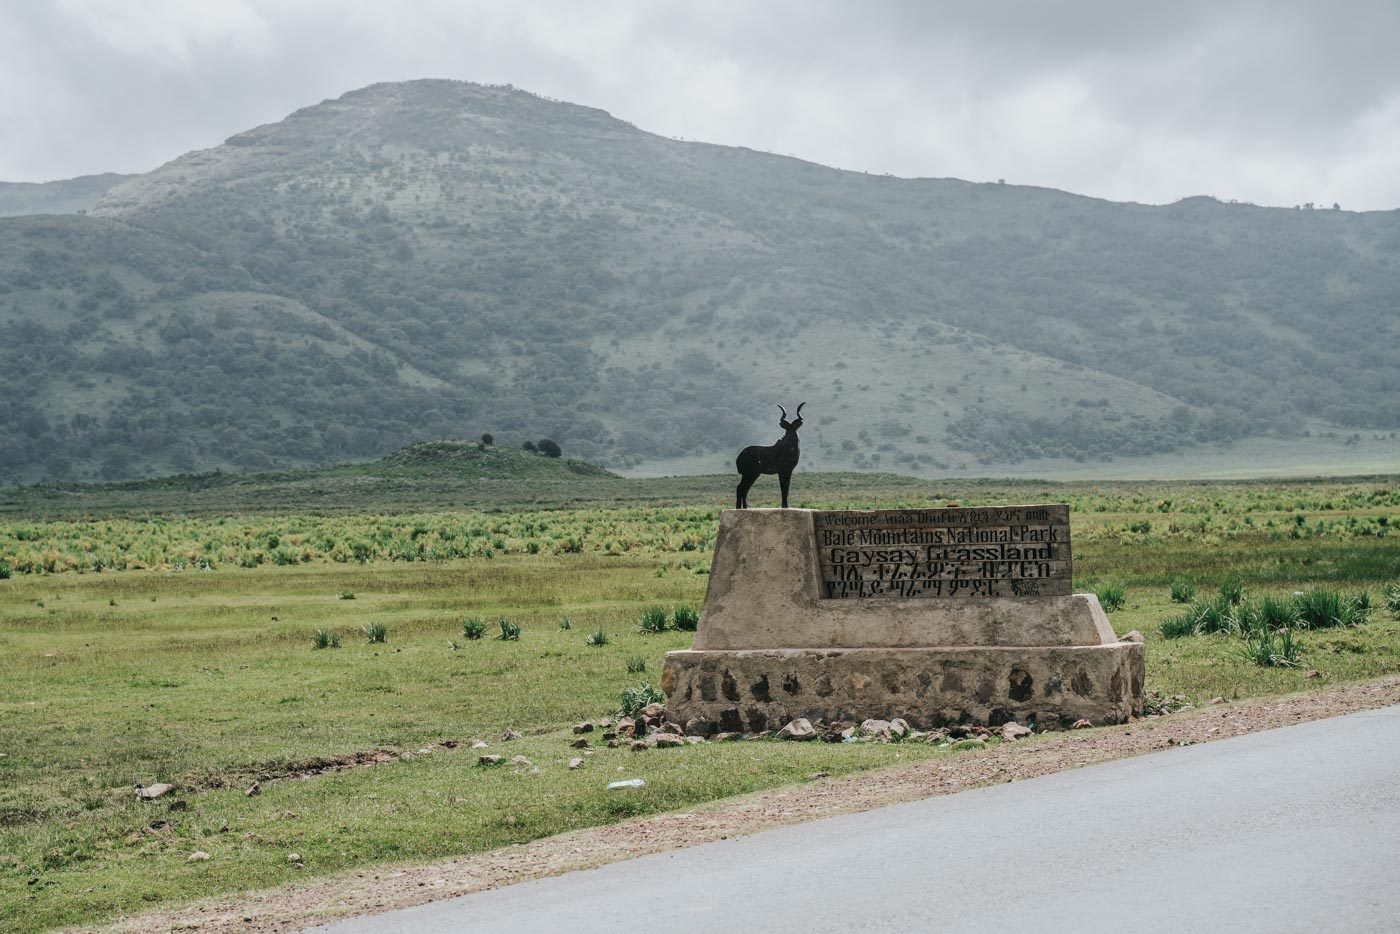 Entrance at the Bale Mountains National Park, Ethiopia